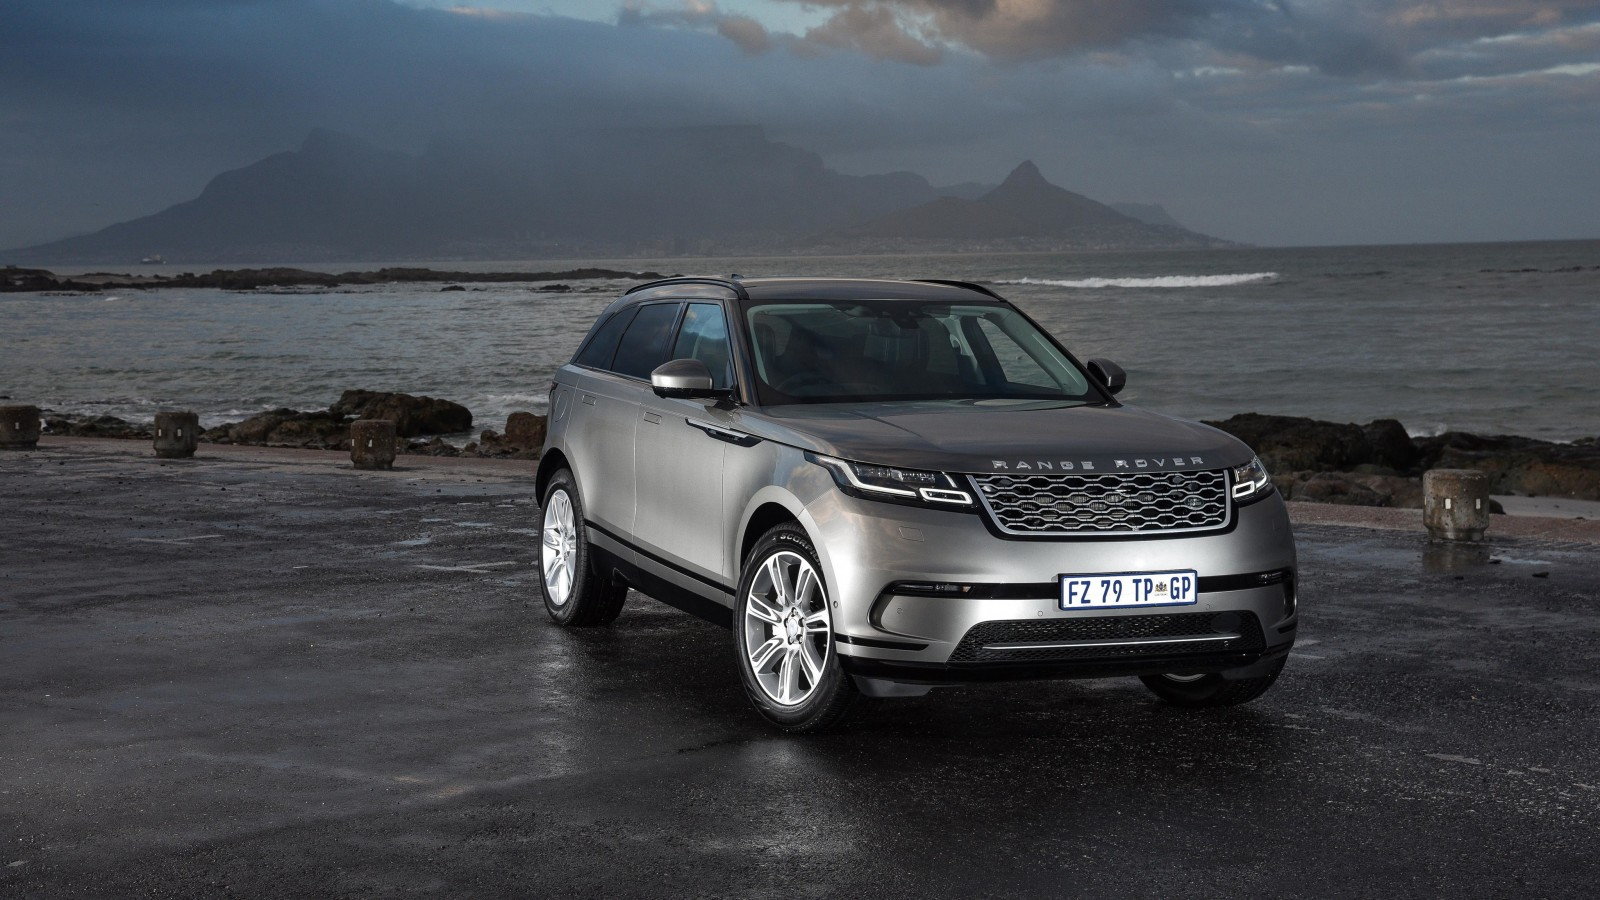 2018 Range Rover Velar D240 HSE 4K Wallpaper | HD Car Wallpapers | ID #8867